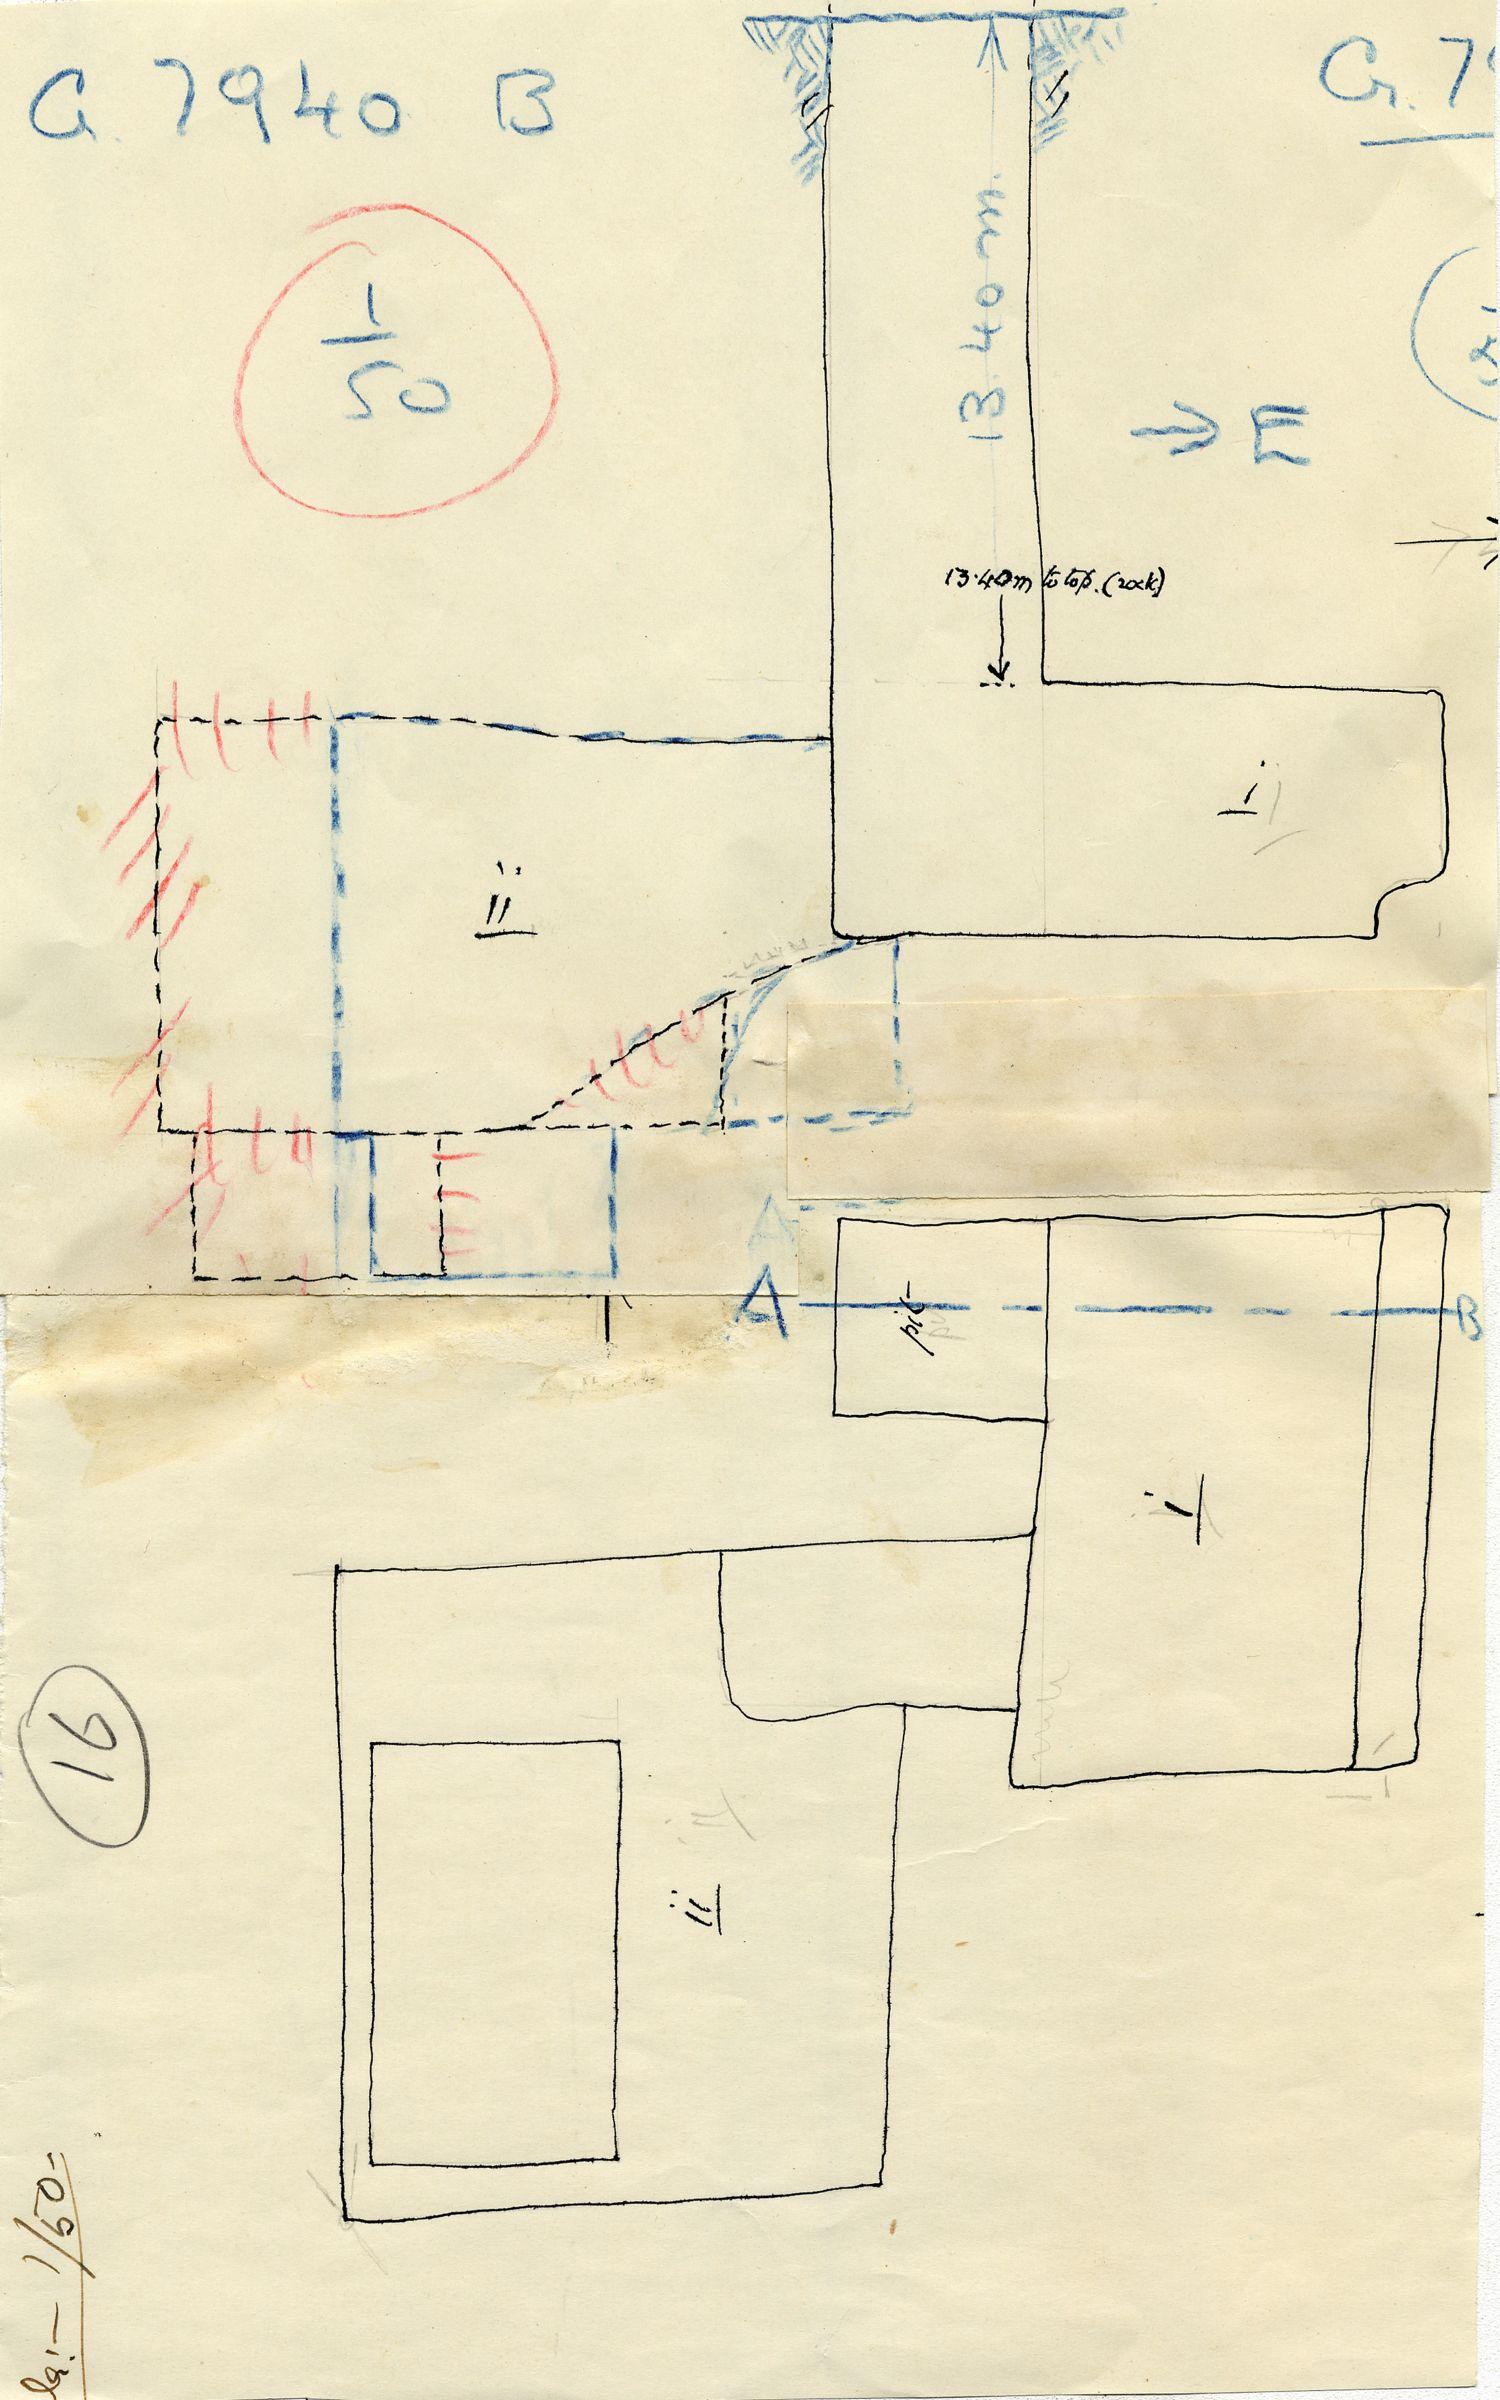 Maps and plans: G 7940, Shaft B